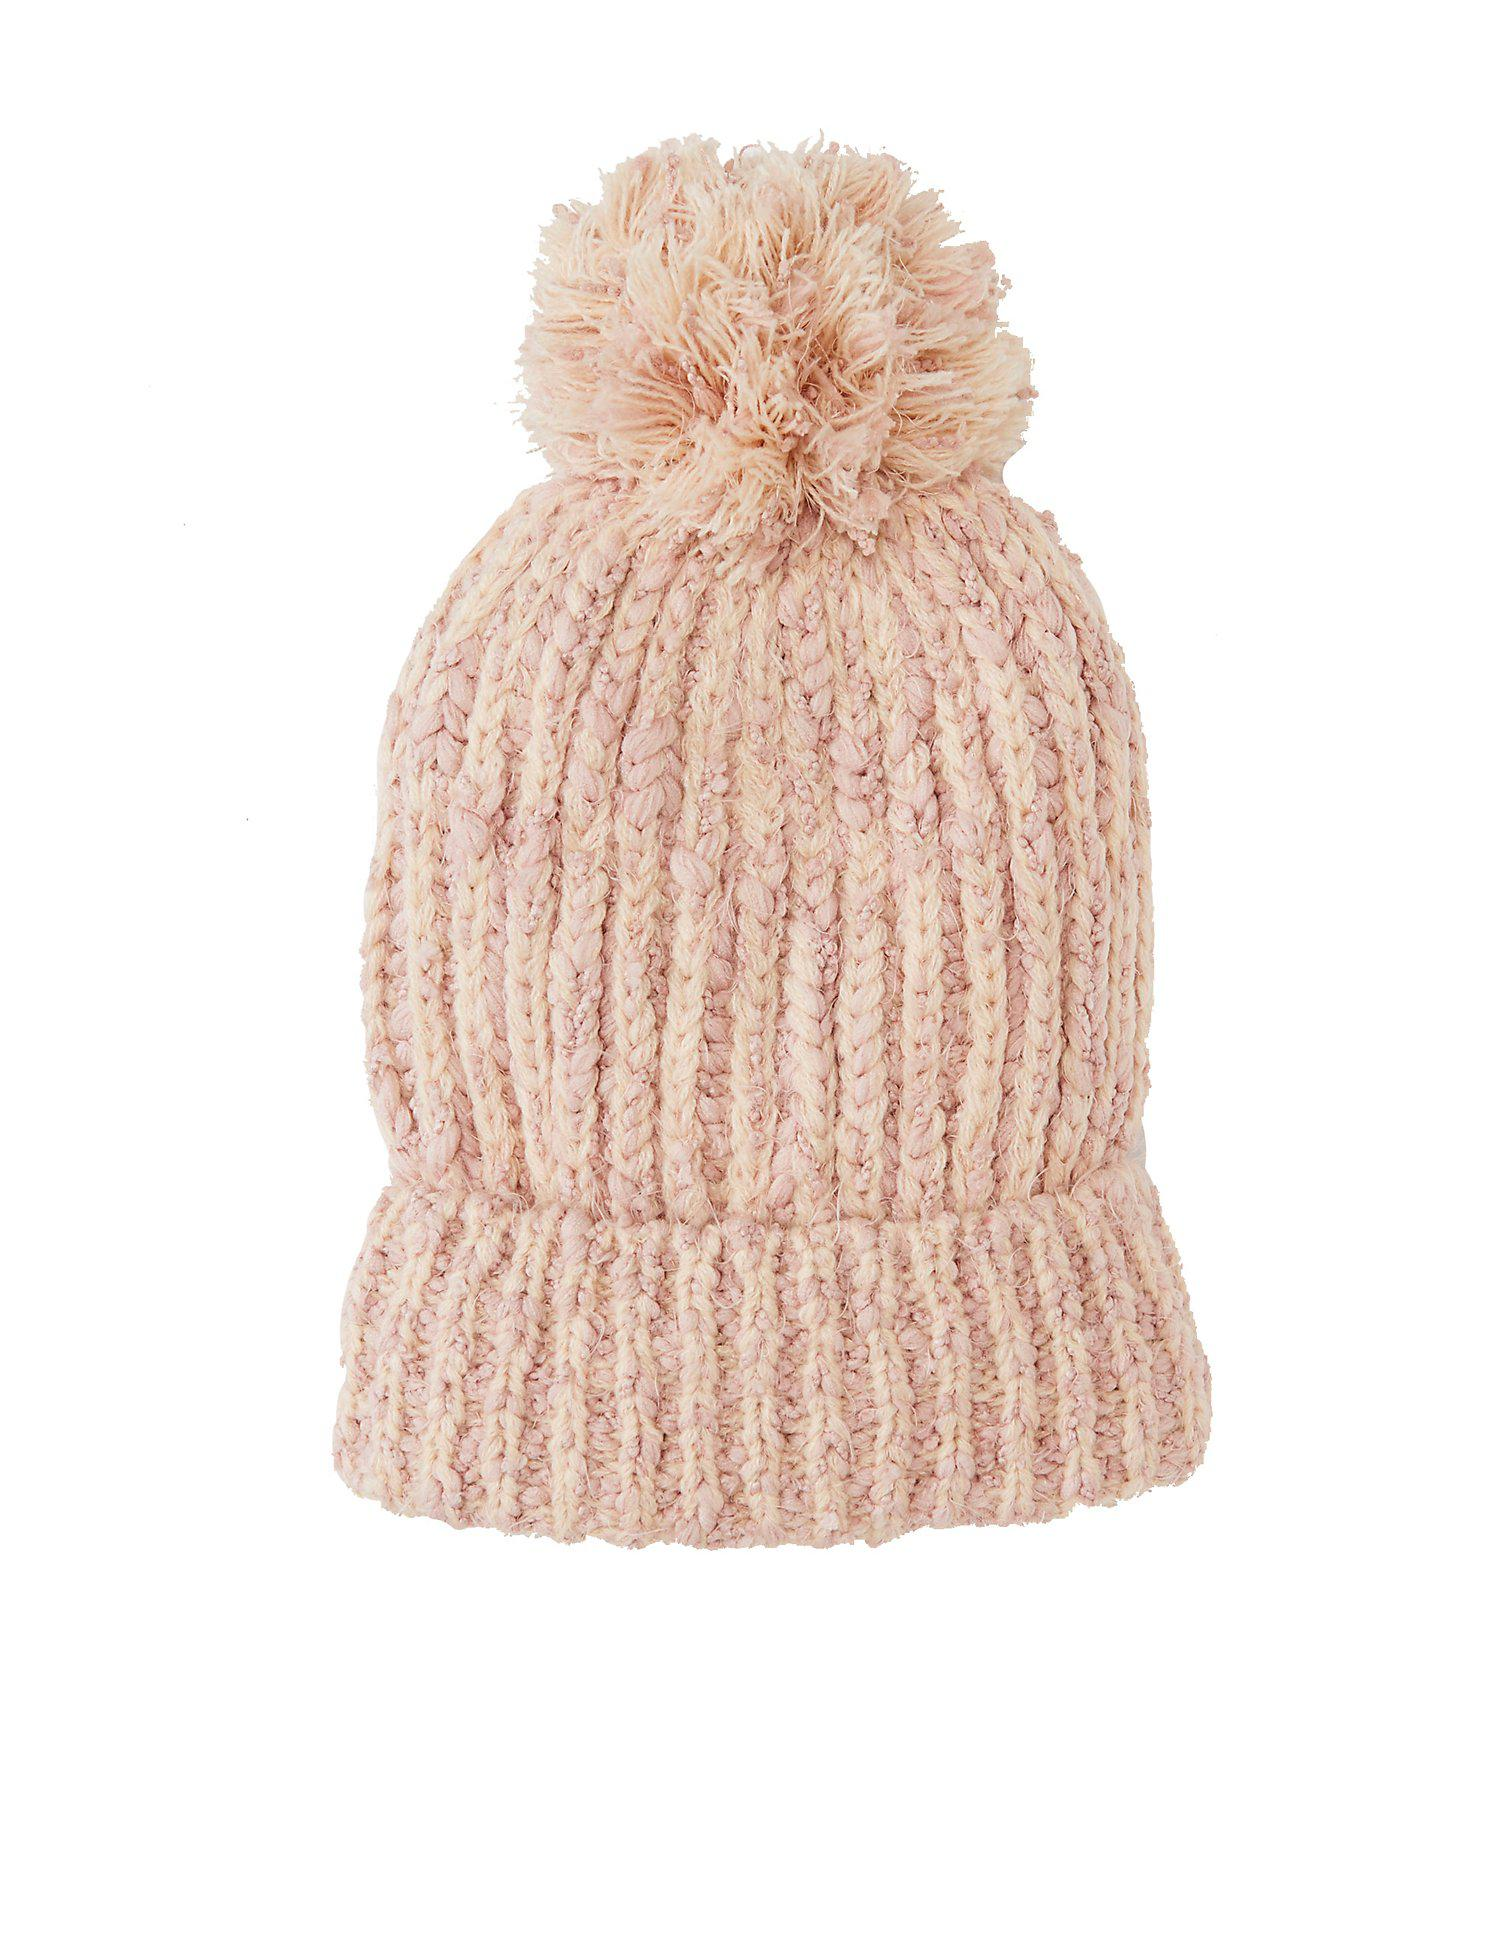 98f4bd28c68 Lyst - Charlotte Russe Marled Knit Pom Pom Beanie in Pink